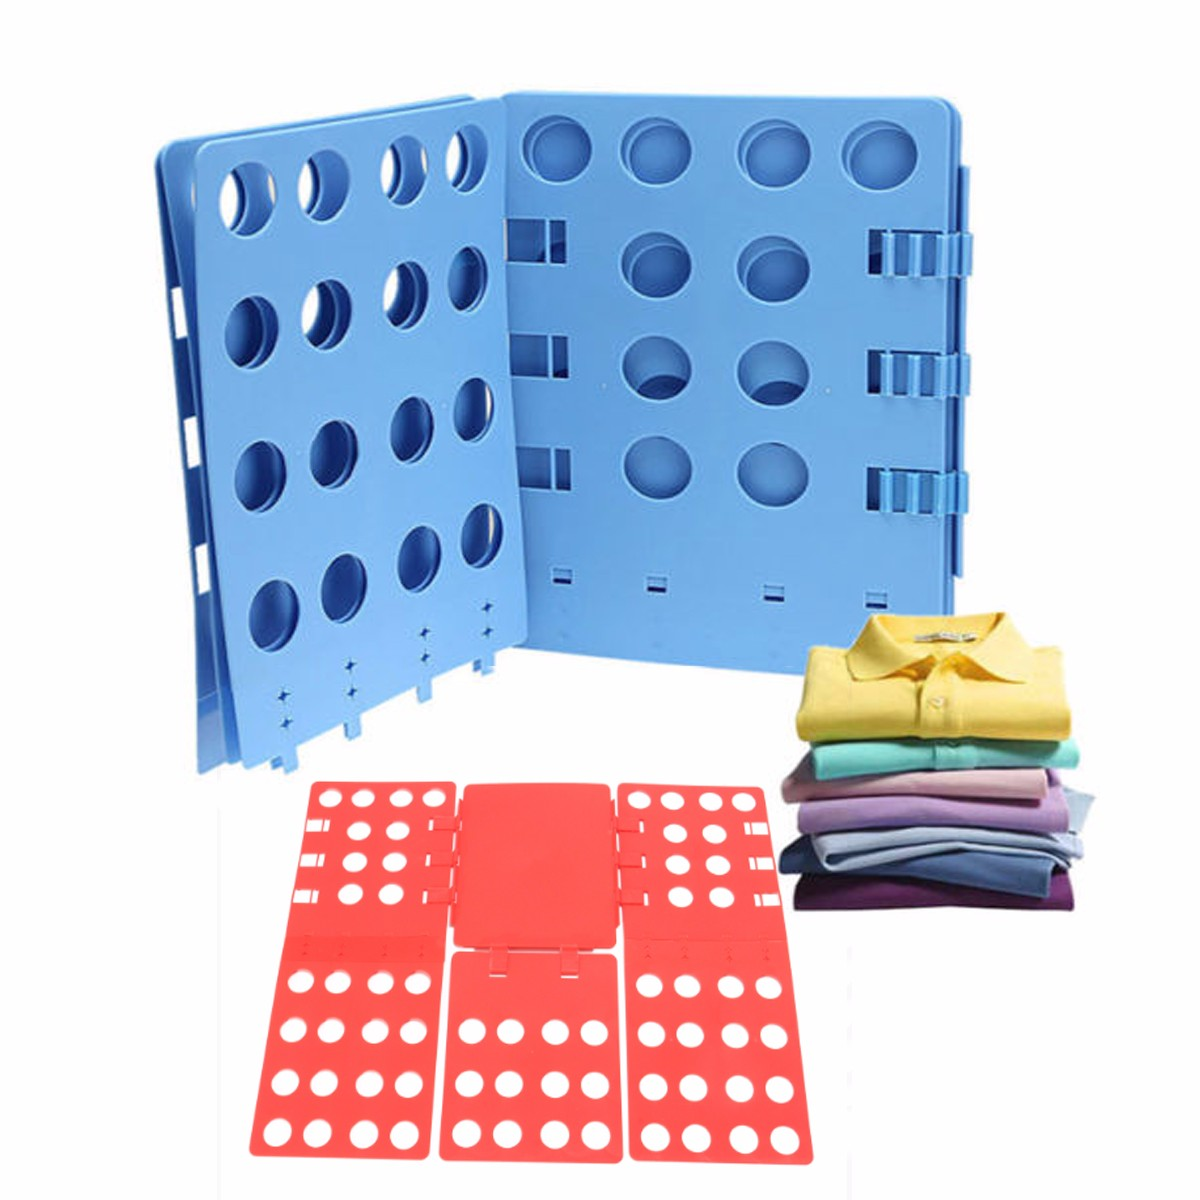 Adult Size Clothes Folding Board Save Time Multifuncitonal Magic Fast Speed T-Shirt Clothes Easy Fold Organize 69x56cm